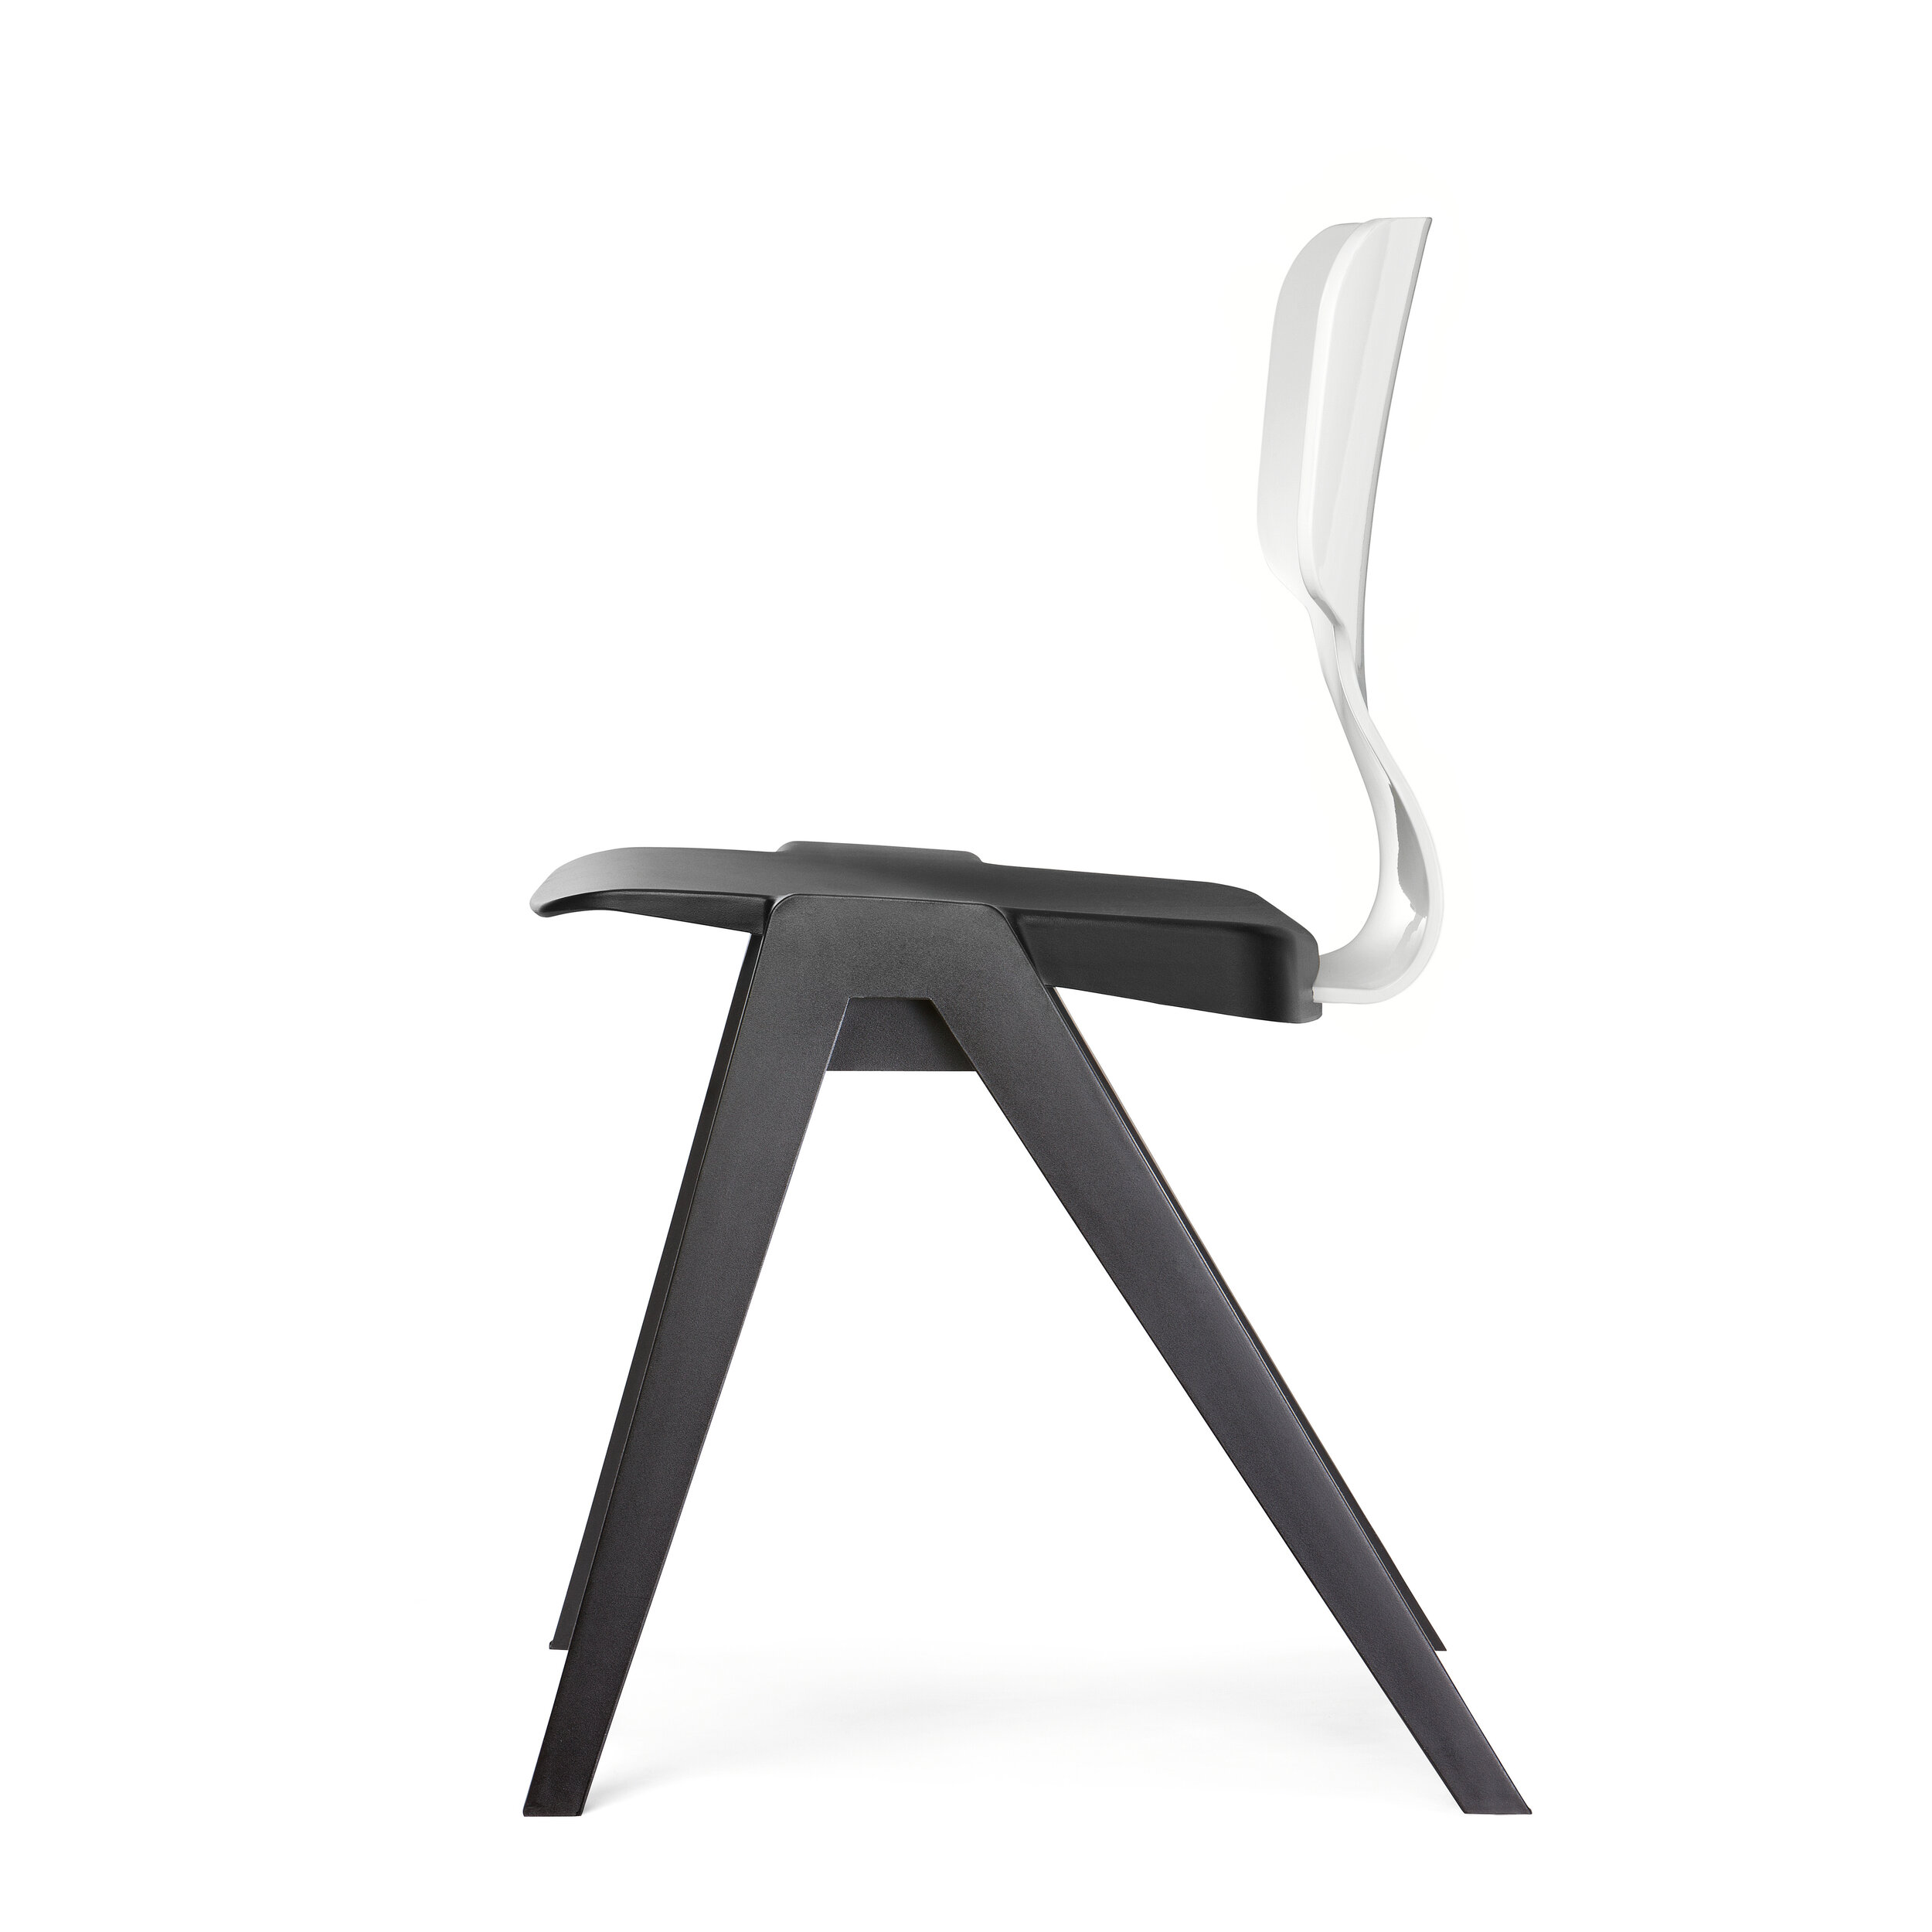 INEKE HANS: A380 SEAT FOR AHREND  This chair consists of two components, so easy to (dis)assemble. And both recyclable. The flexible back is made from Xenoy with recycled PET.  www.inekehans.com